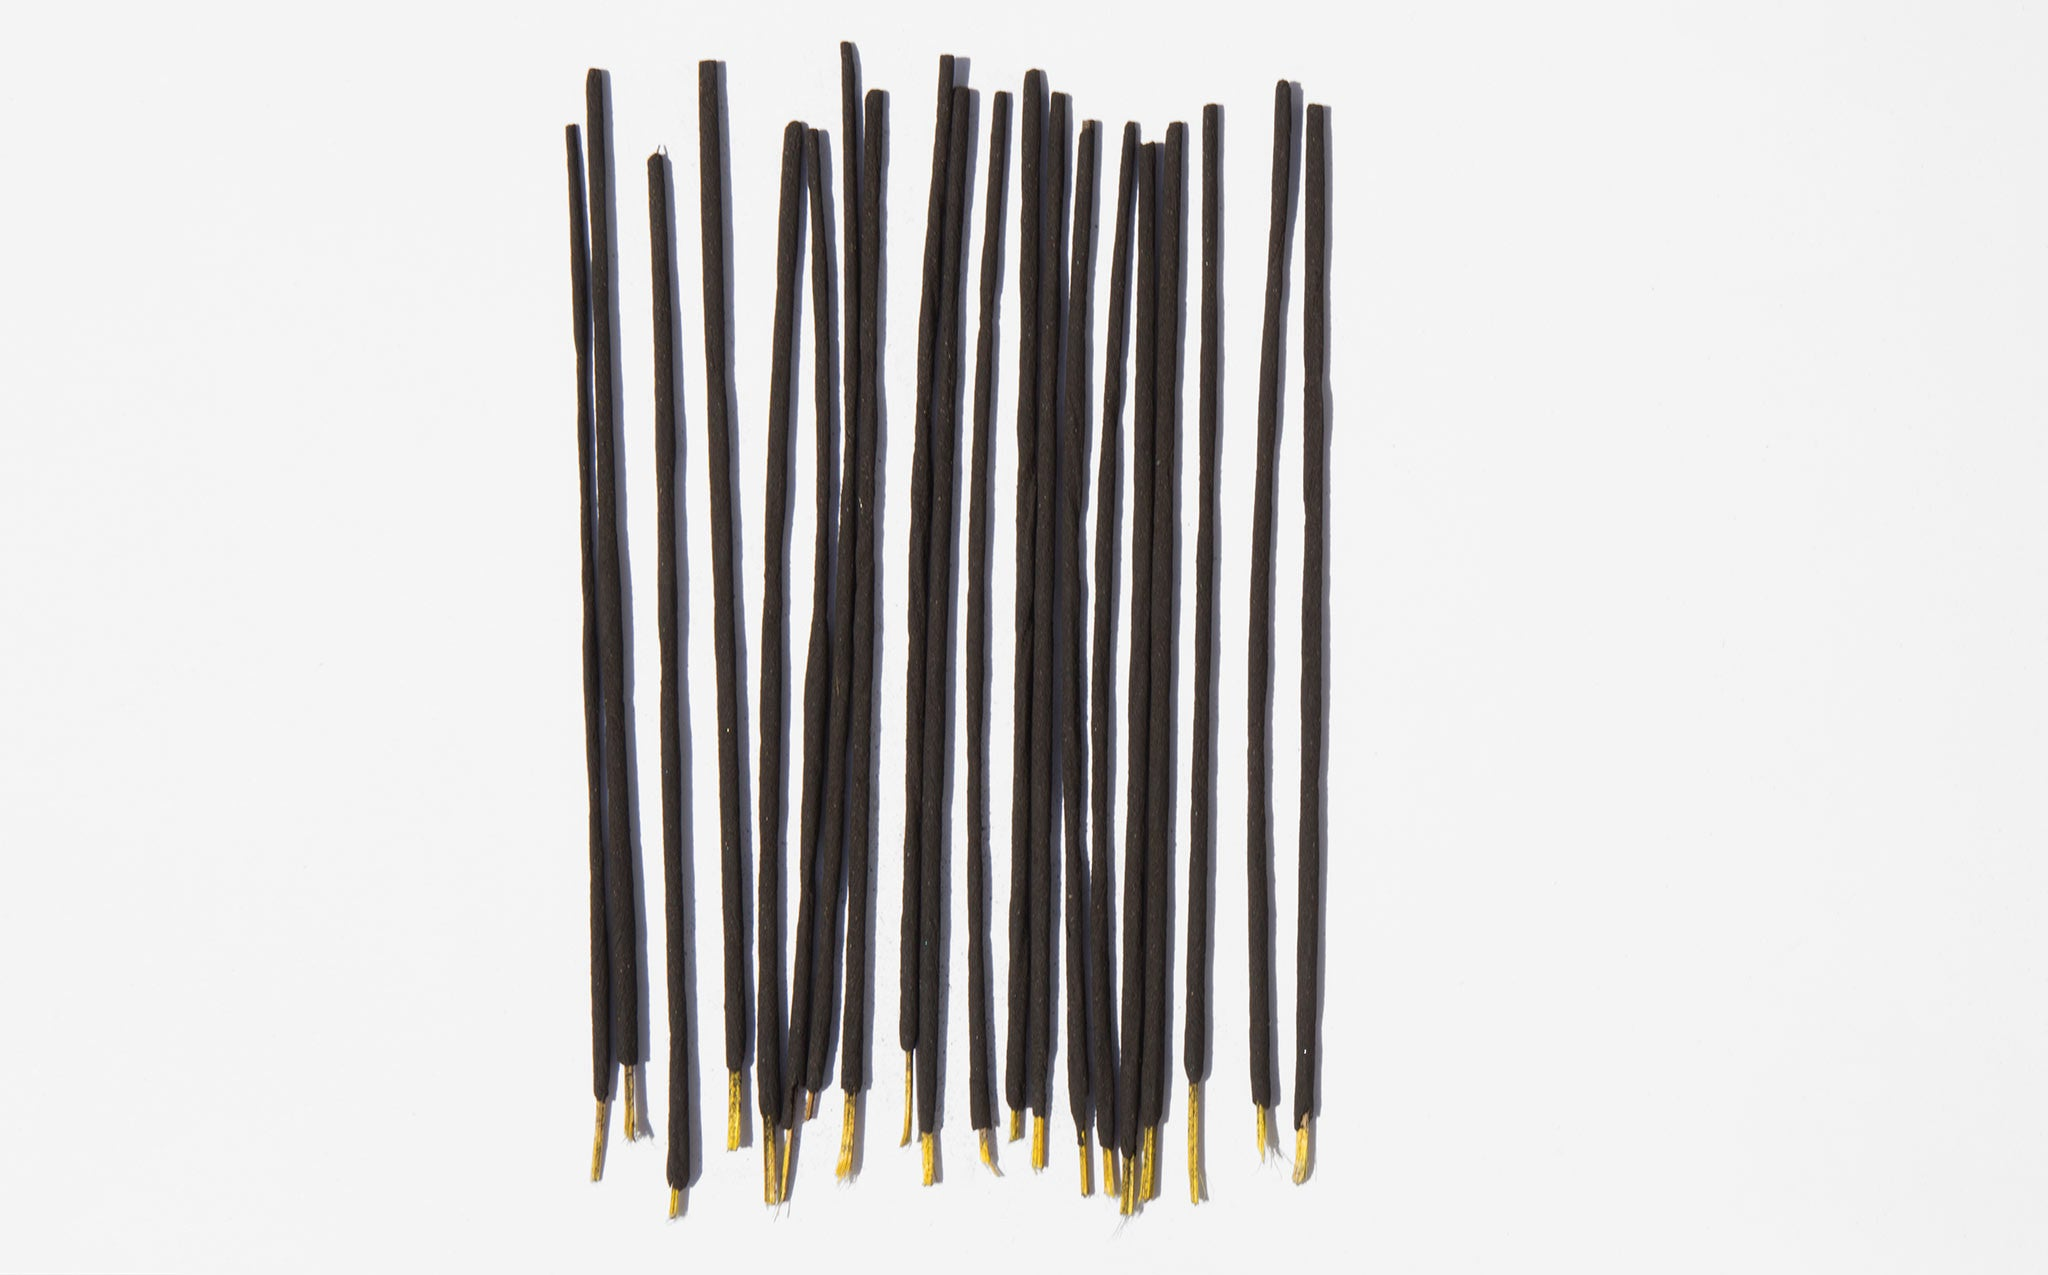 Yoke Ayurveda Ritual Incense kindred black